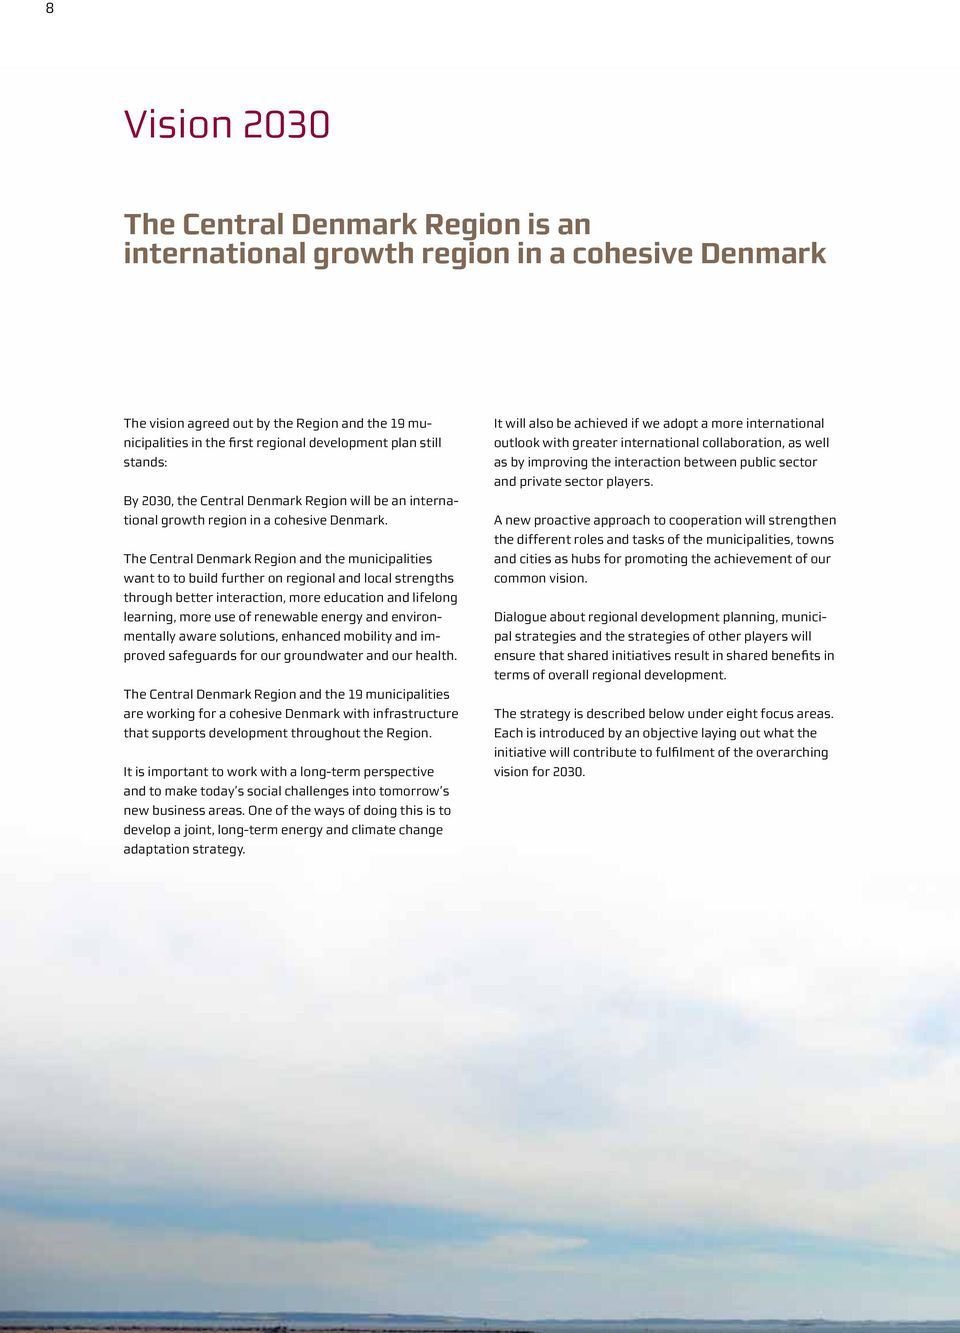 The Central Denmark Region and the municipalities want to to build further on regional and local strengths through better interaction, more education and lifelong learning, more use of renewable